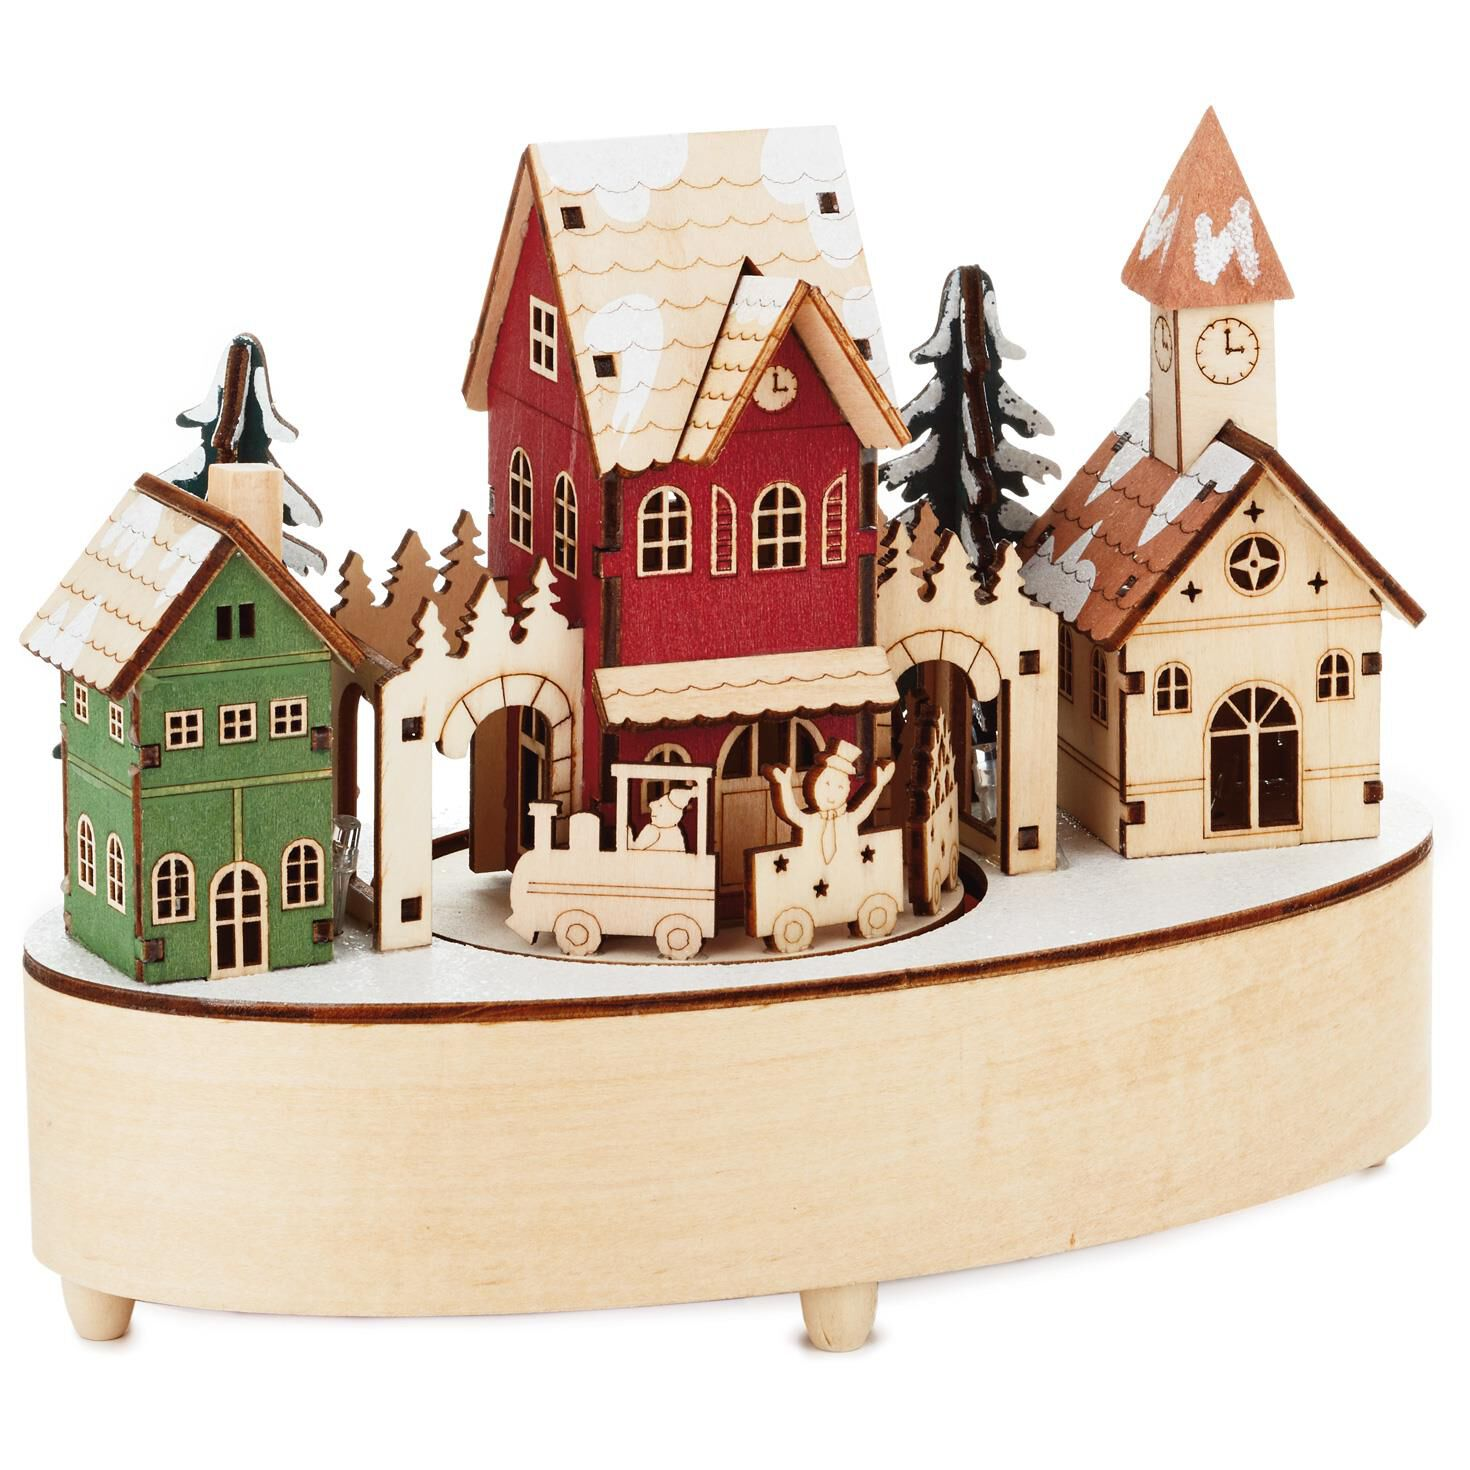 christmas village musical wood figurine with light and motion decorative accessories hallmark - Hallmark Christmas Village